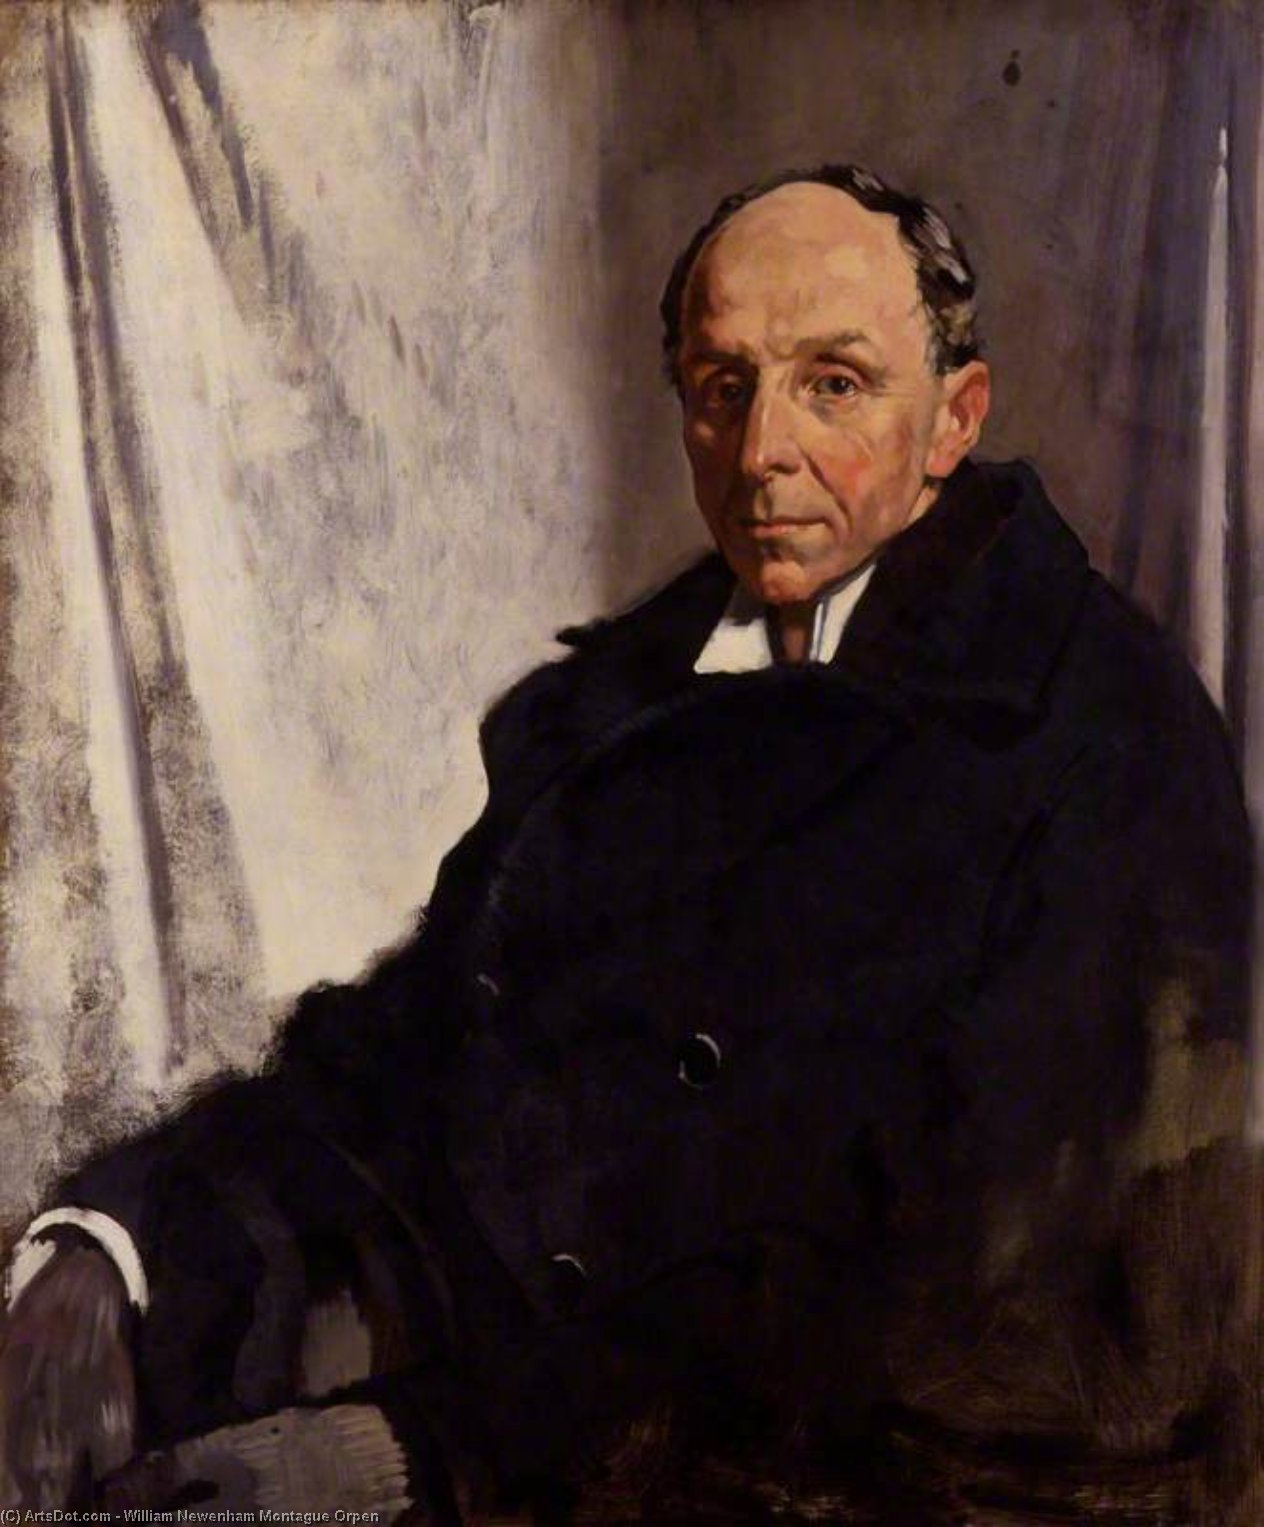 edgar algernon robert Gascoyne-cecil , 1st Vicomte cecil of chelwood de William Newenham Montague Orpen (1878-1931, Ireland)